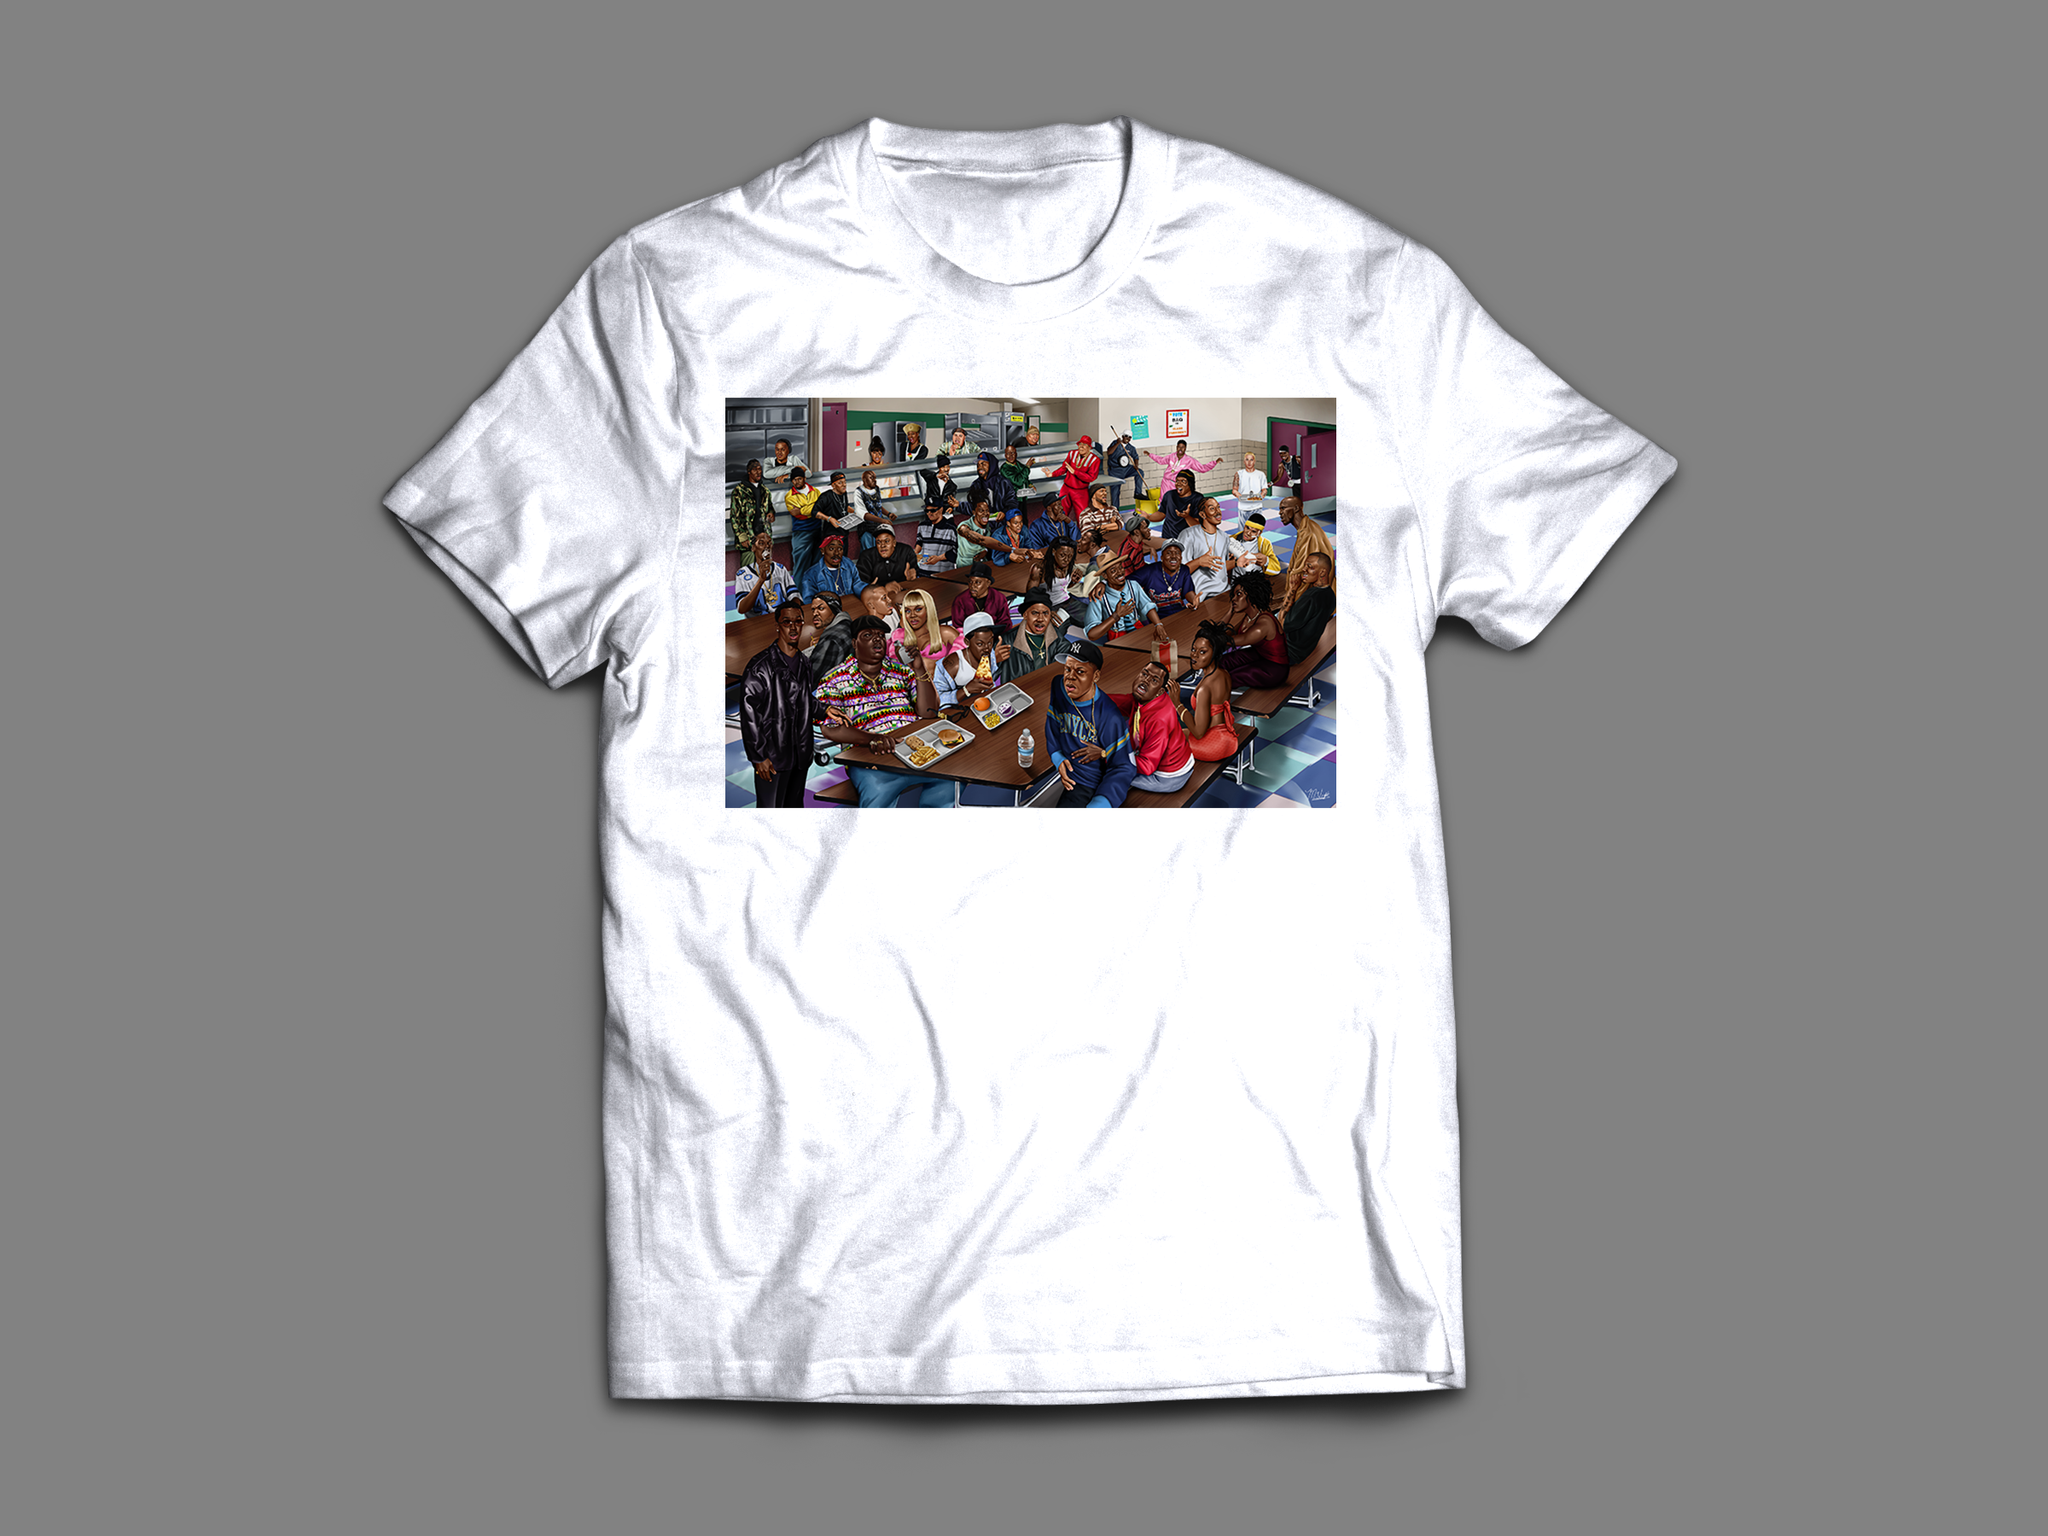 'The Lunchroom' T-Shirt